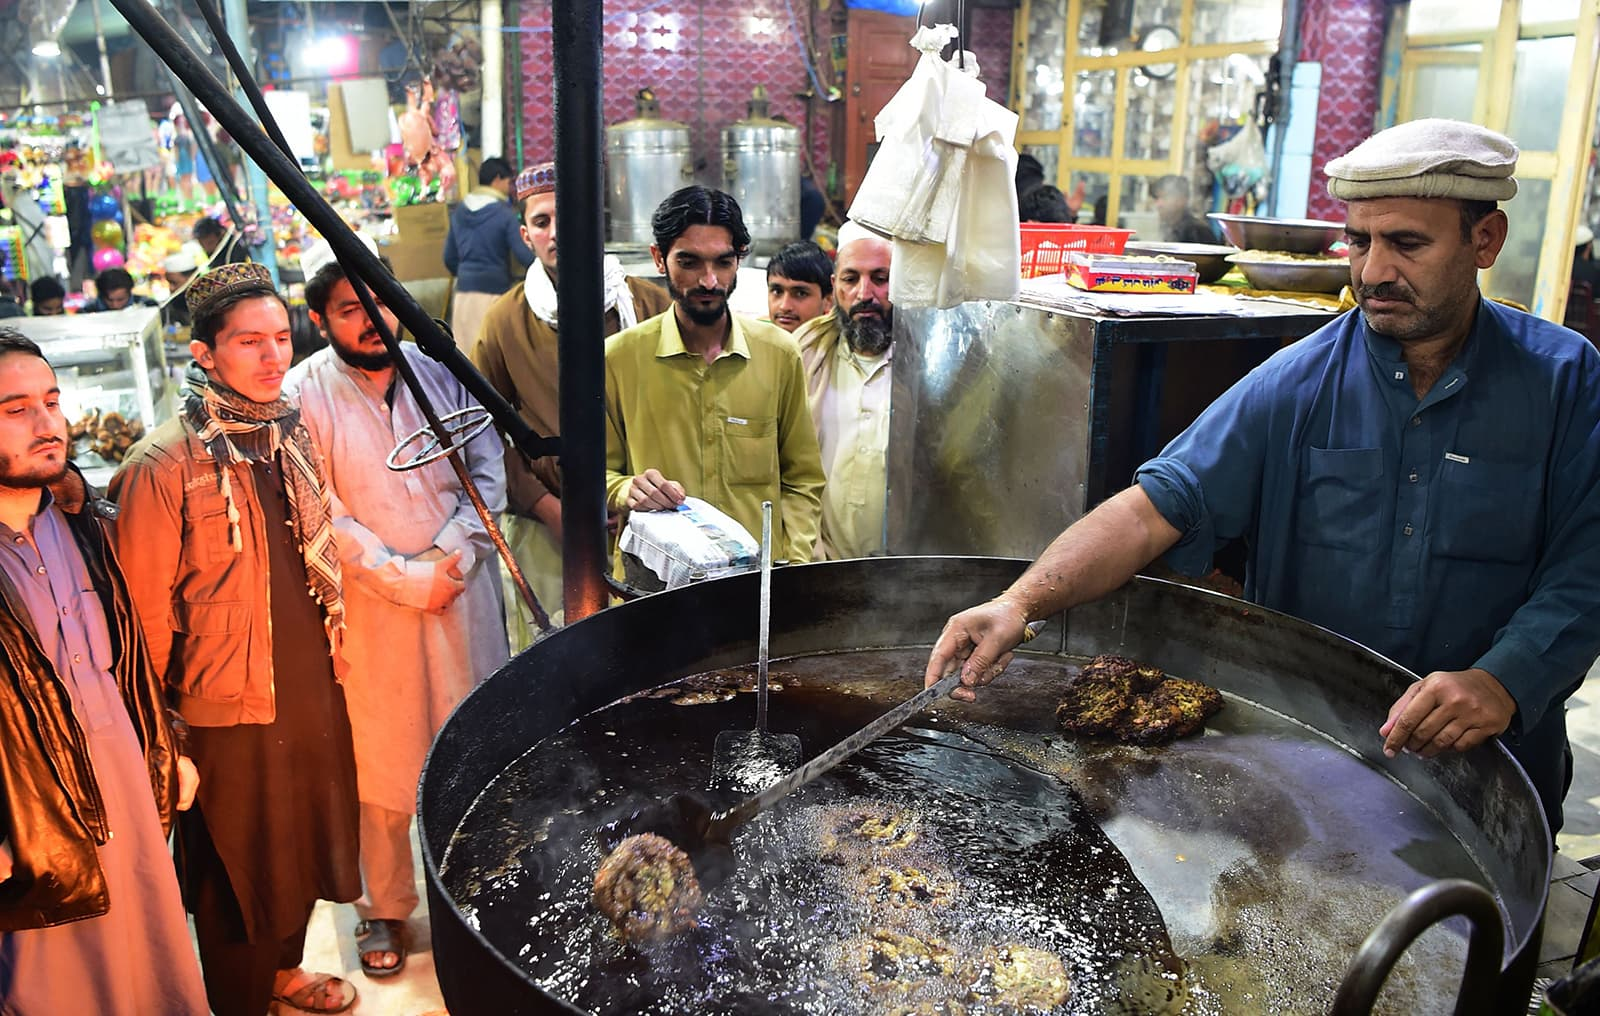 A cook grills kebabs while customers look on at the Tory Kebab House in Namak Mandi in Peshawar. — AFP